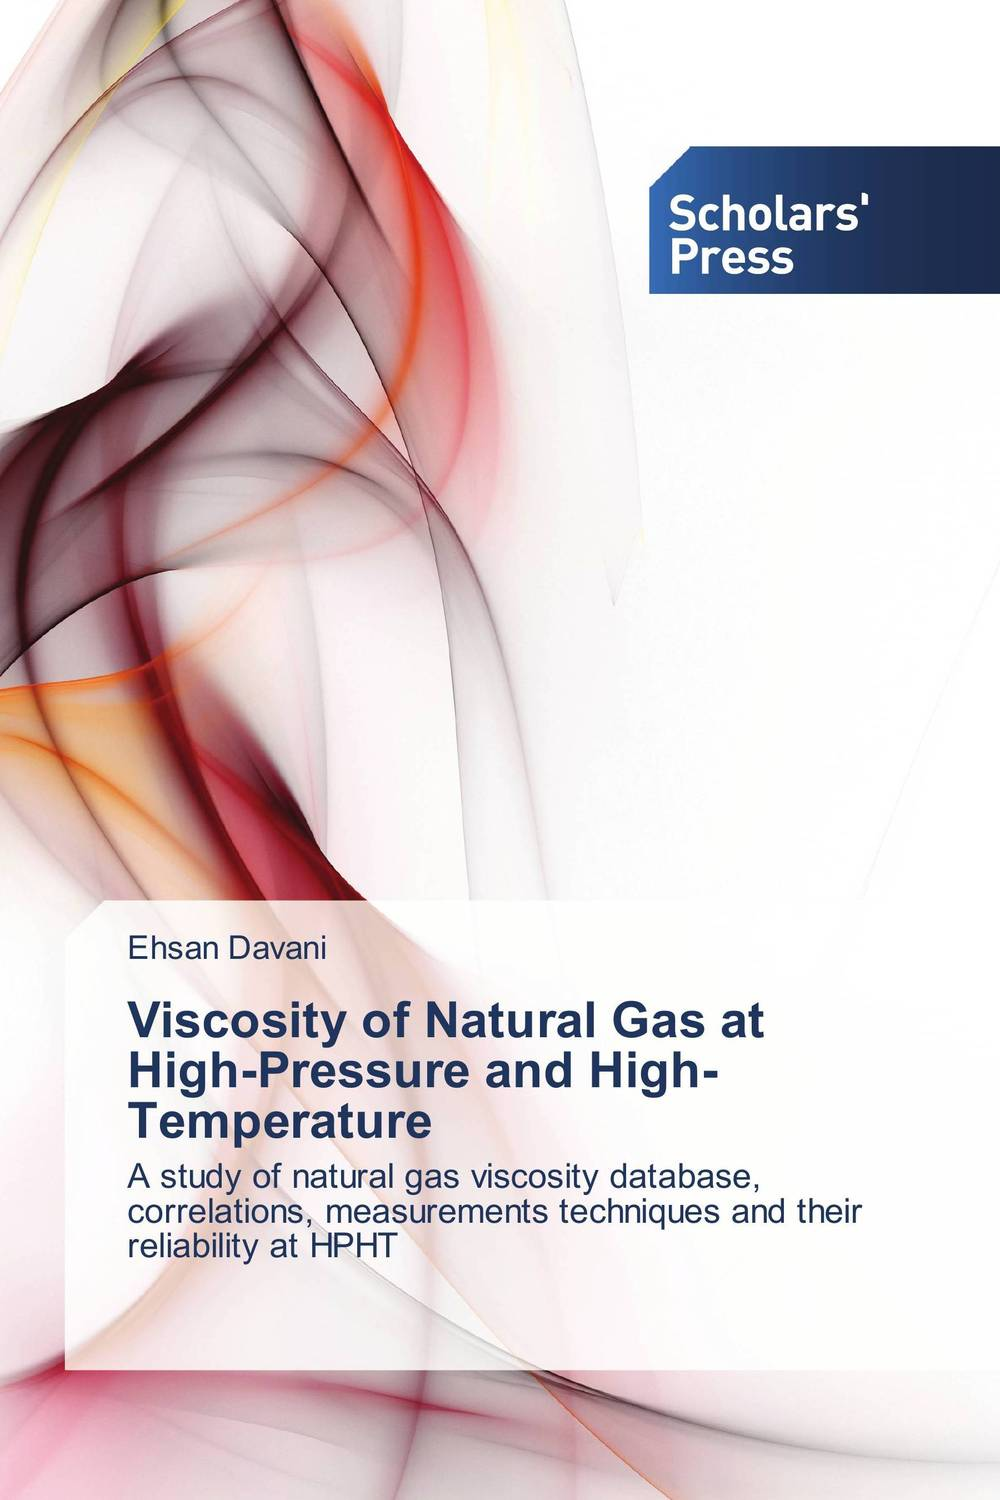 Viscosity of Natural Gas at High-Pressure and High-Temperature estimating technically and economically recoverable unconventional gas